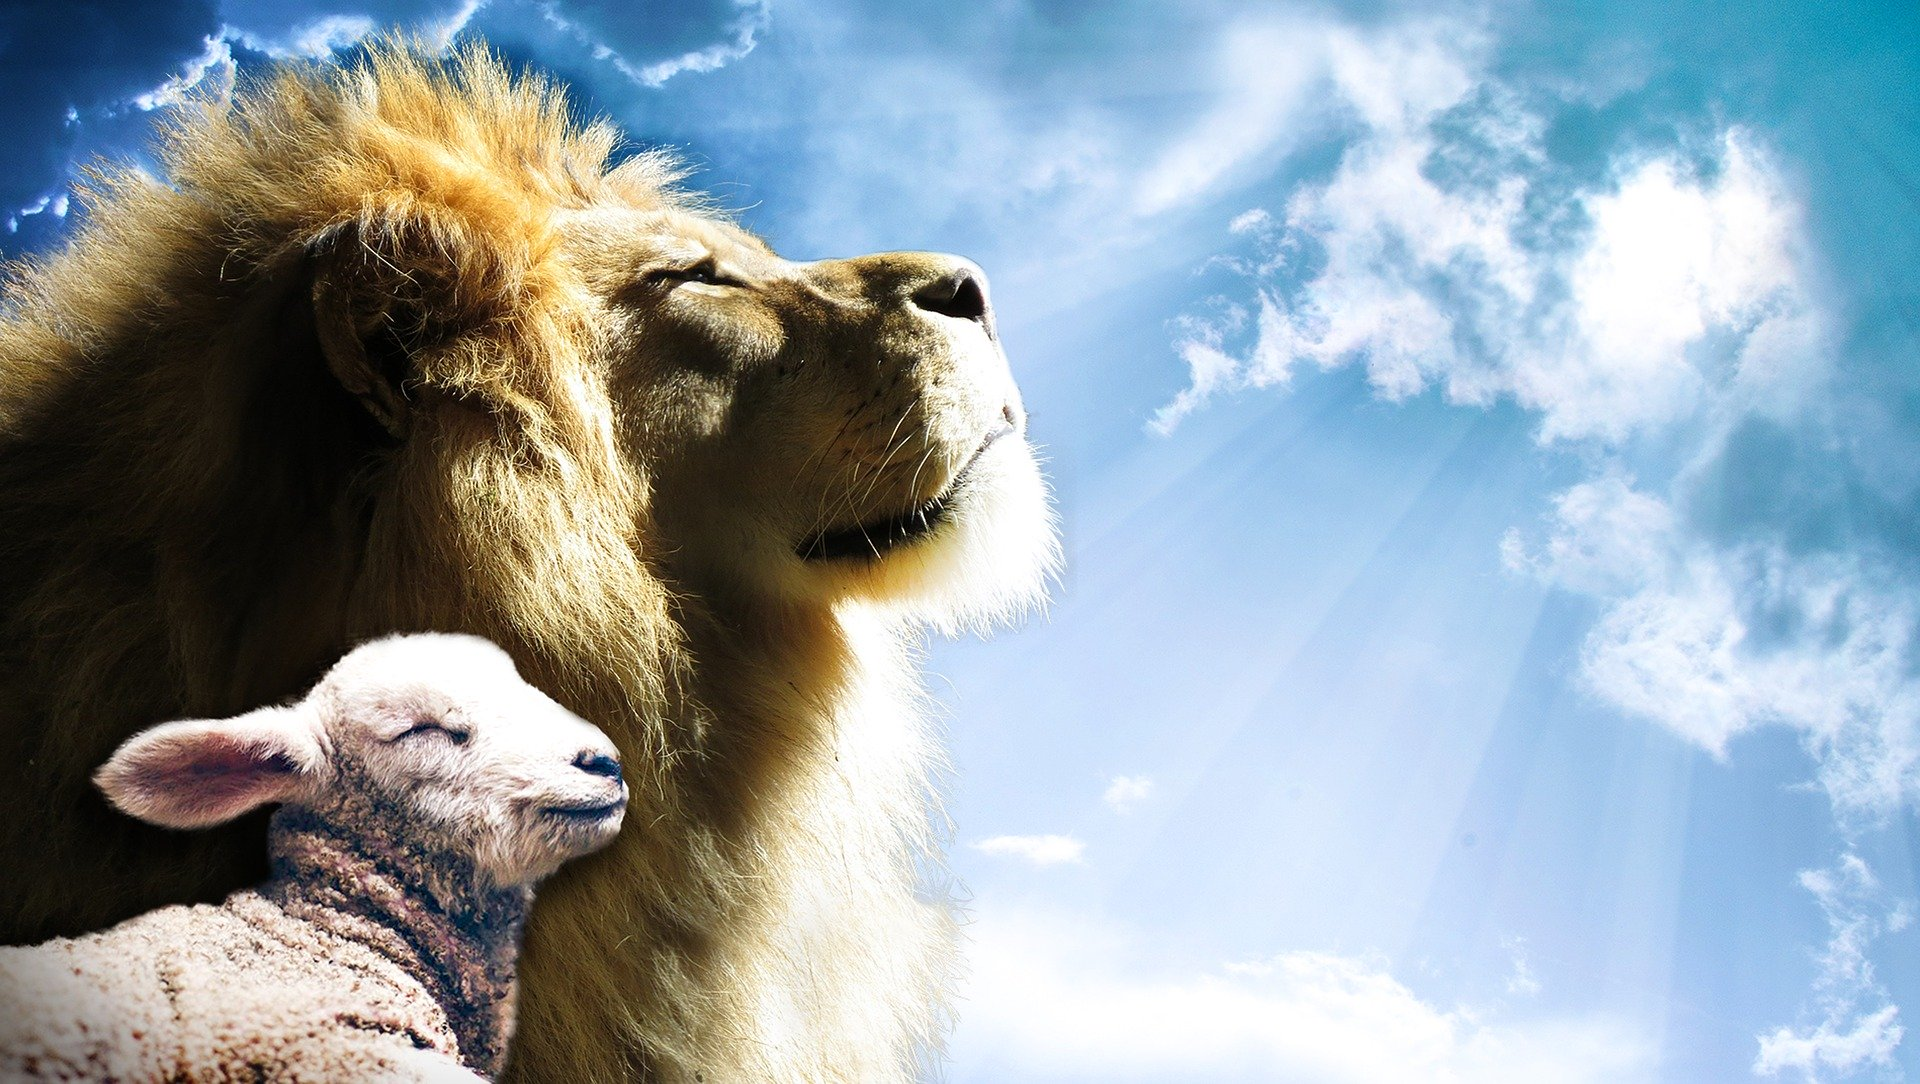 Image of lamb and lion by Jeff Jacobs from Pixabay